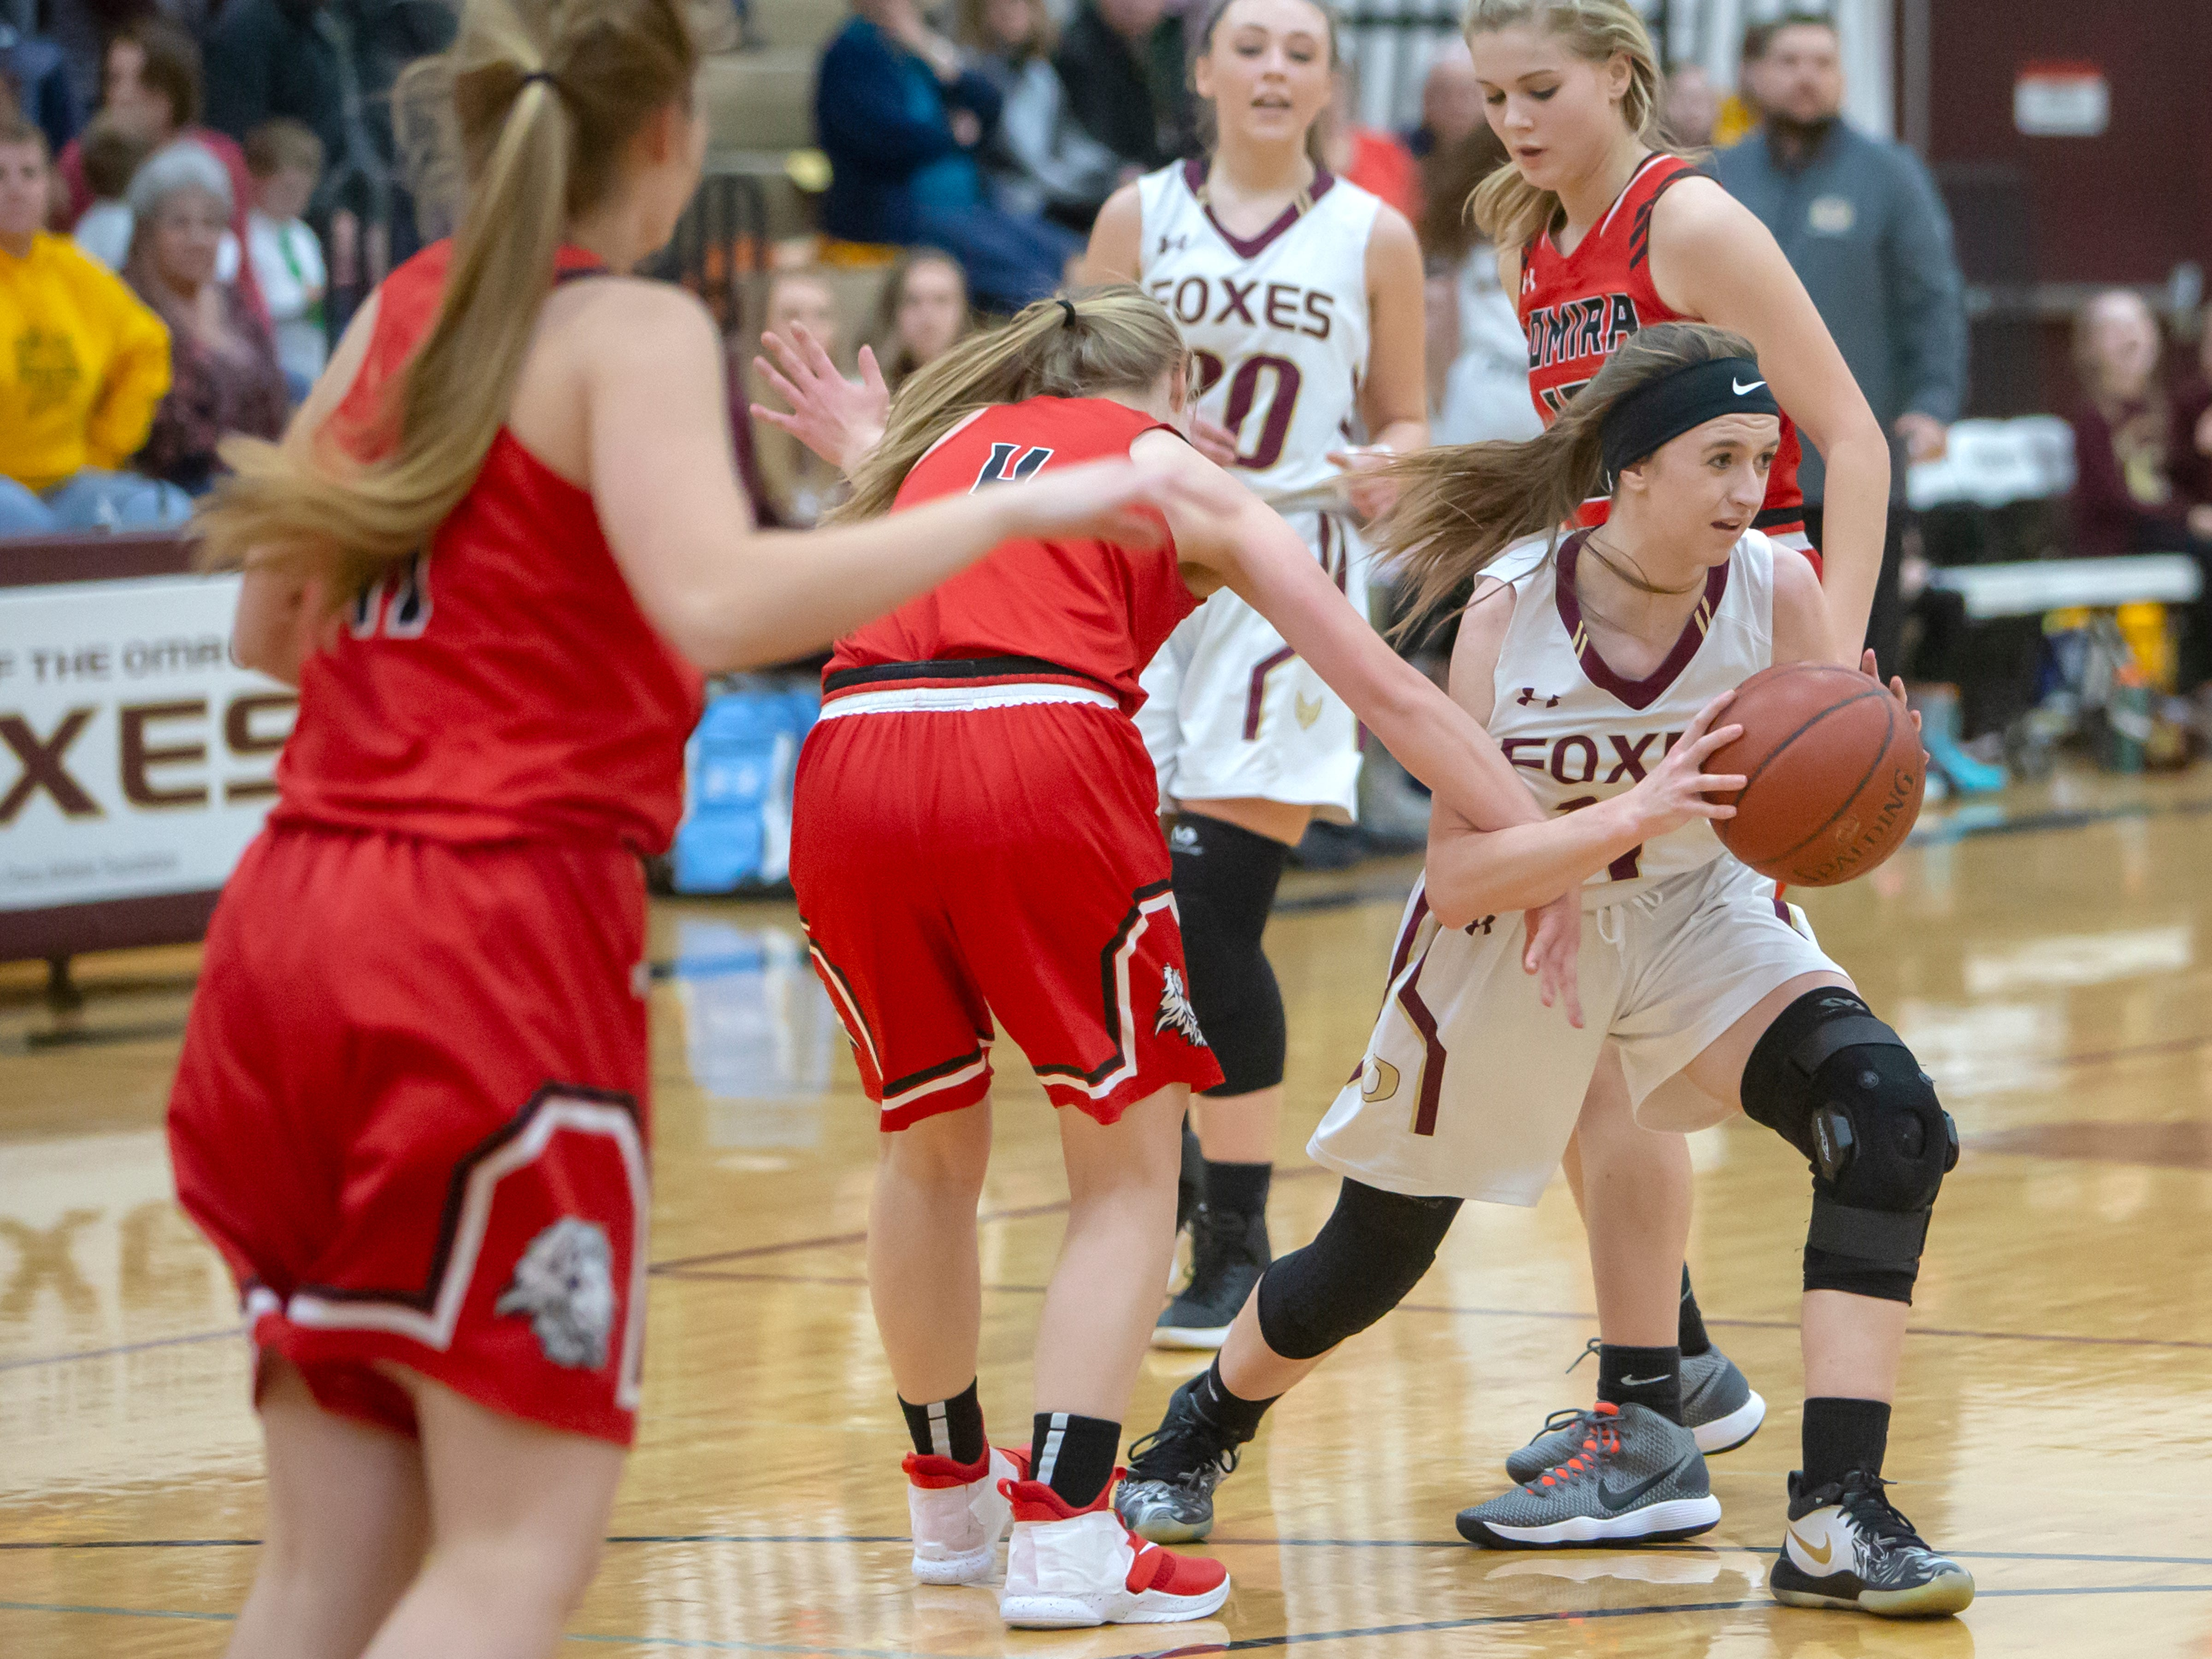 Lomira's Lizzy Wulff hooks an arm around Omro's Danycka Milis moving the ball at Omro High School on Friday, December 14, 2018.